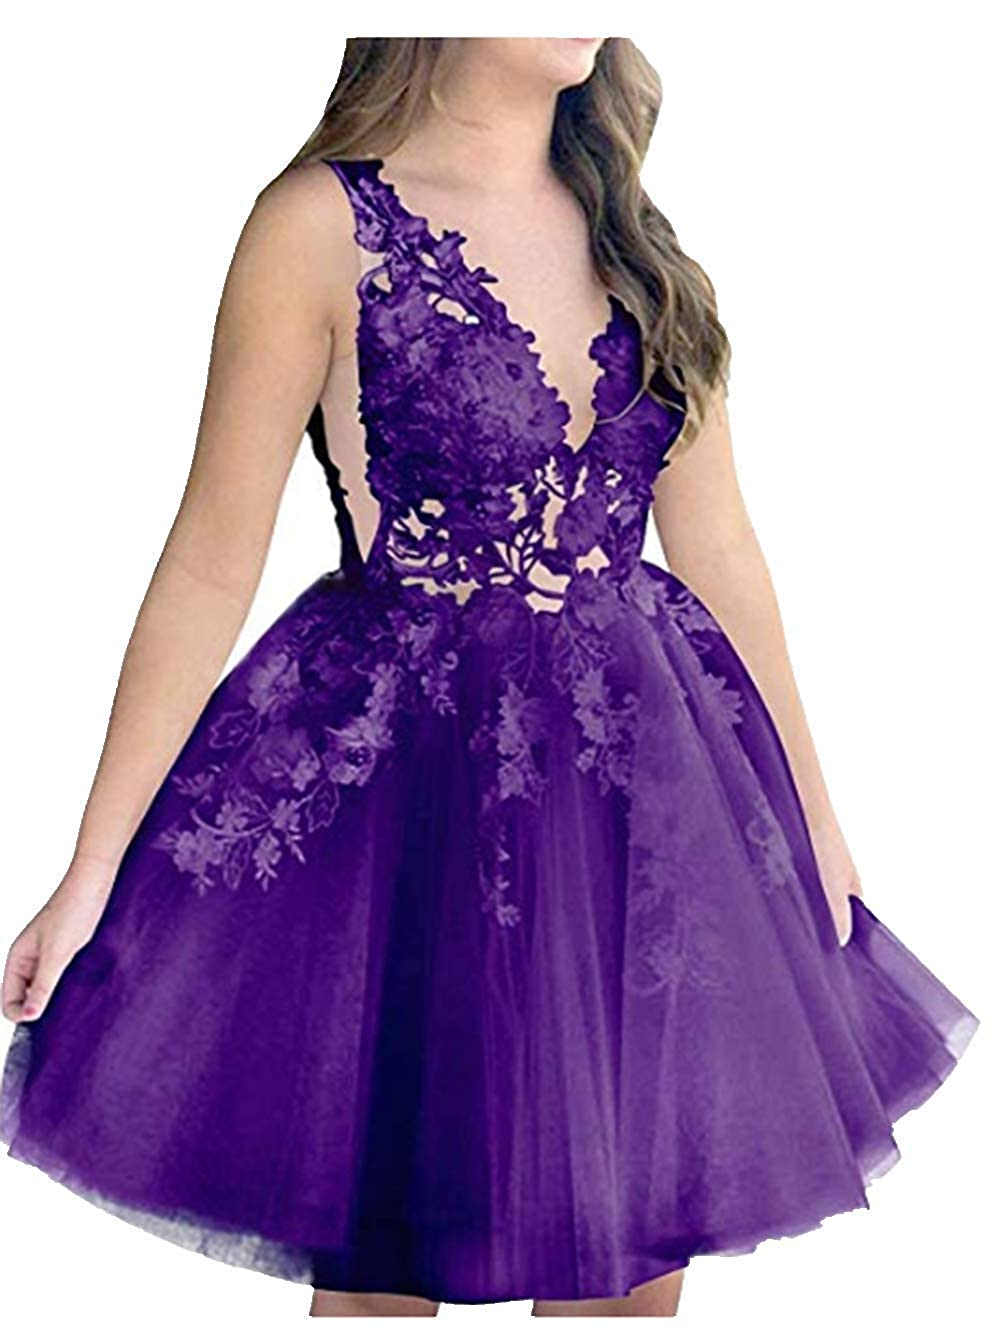 Purple FWVR Women's Short Prom Dress Appliques Homecoming Dresses for Juniors 2019